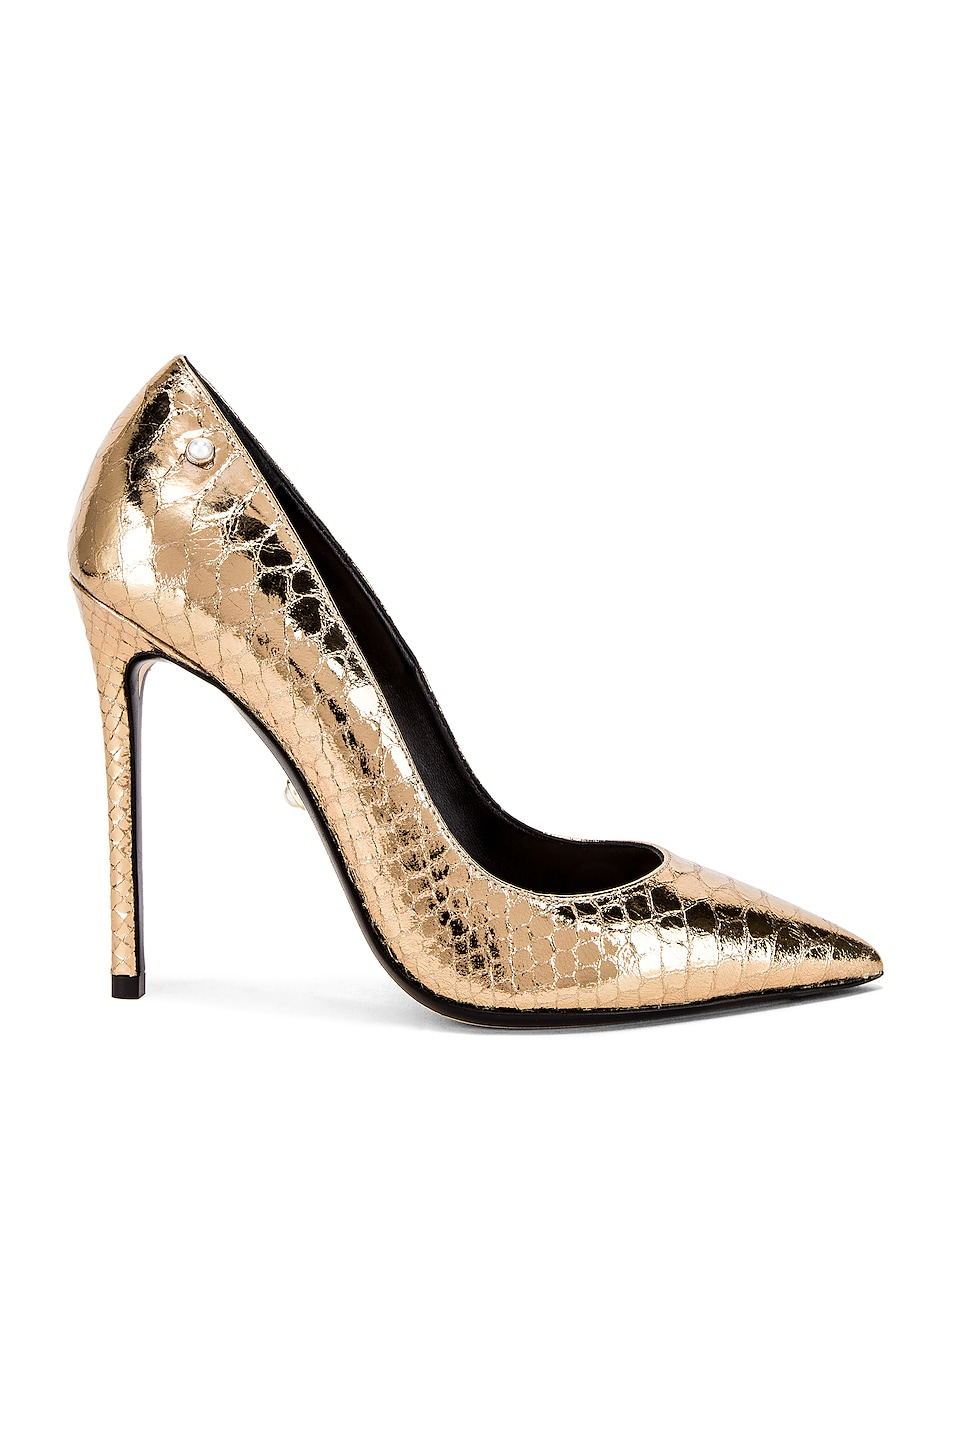 Image 1 of ALEVI Milano Alevi Carrie Pump in Gold Snake